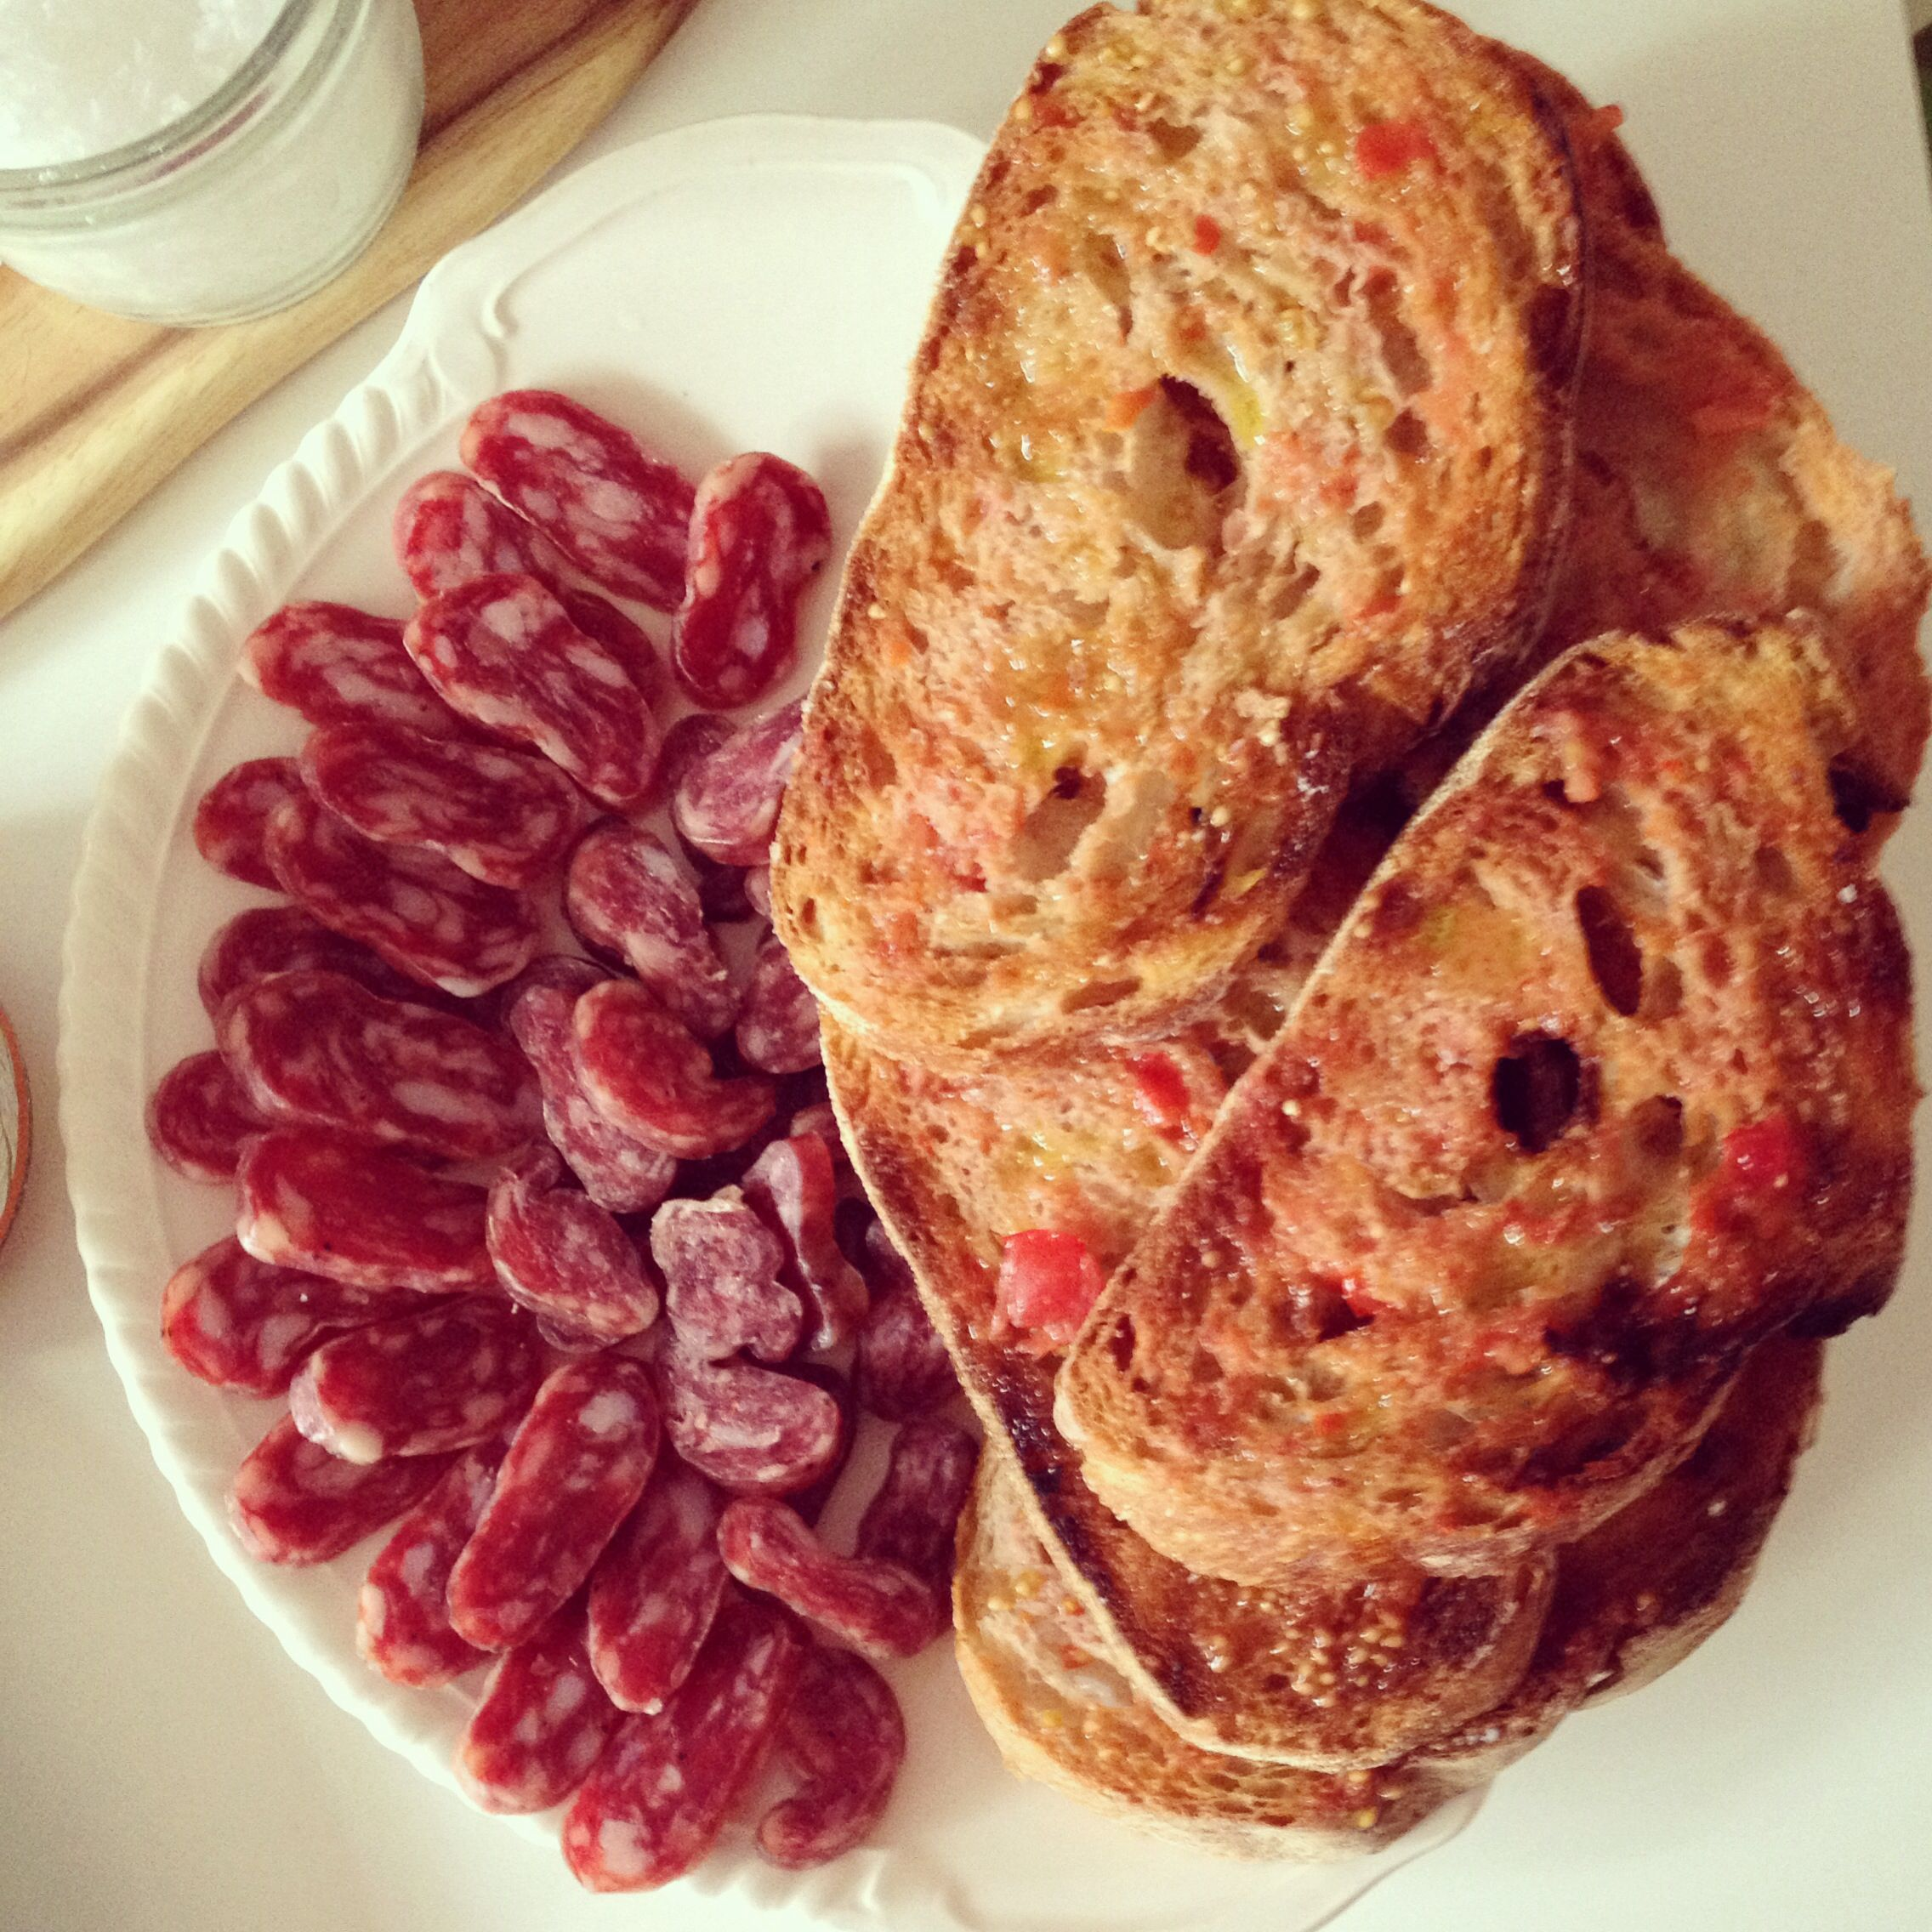 Pa Amb Tomata Fuet Which You Can Get Here Http Catalanfoodandwine Co Uk Condiments Catalan Charcuterie Fuet Html Catalan Recipes Food Food Market